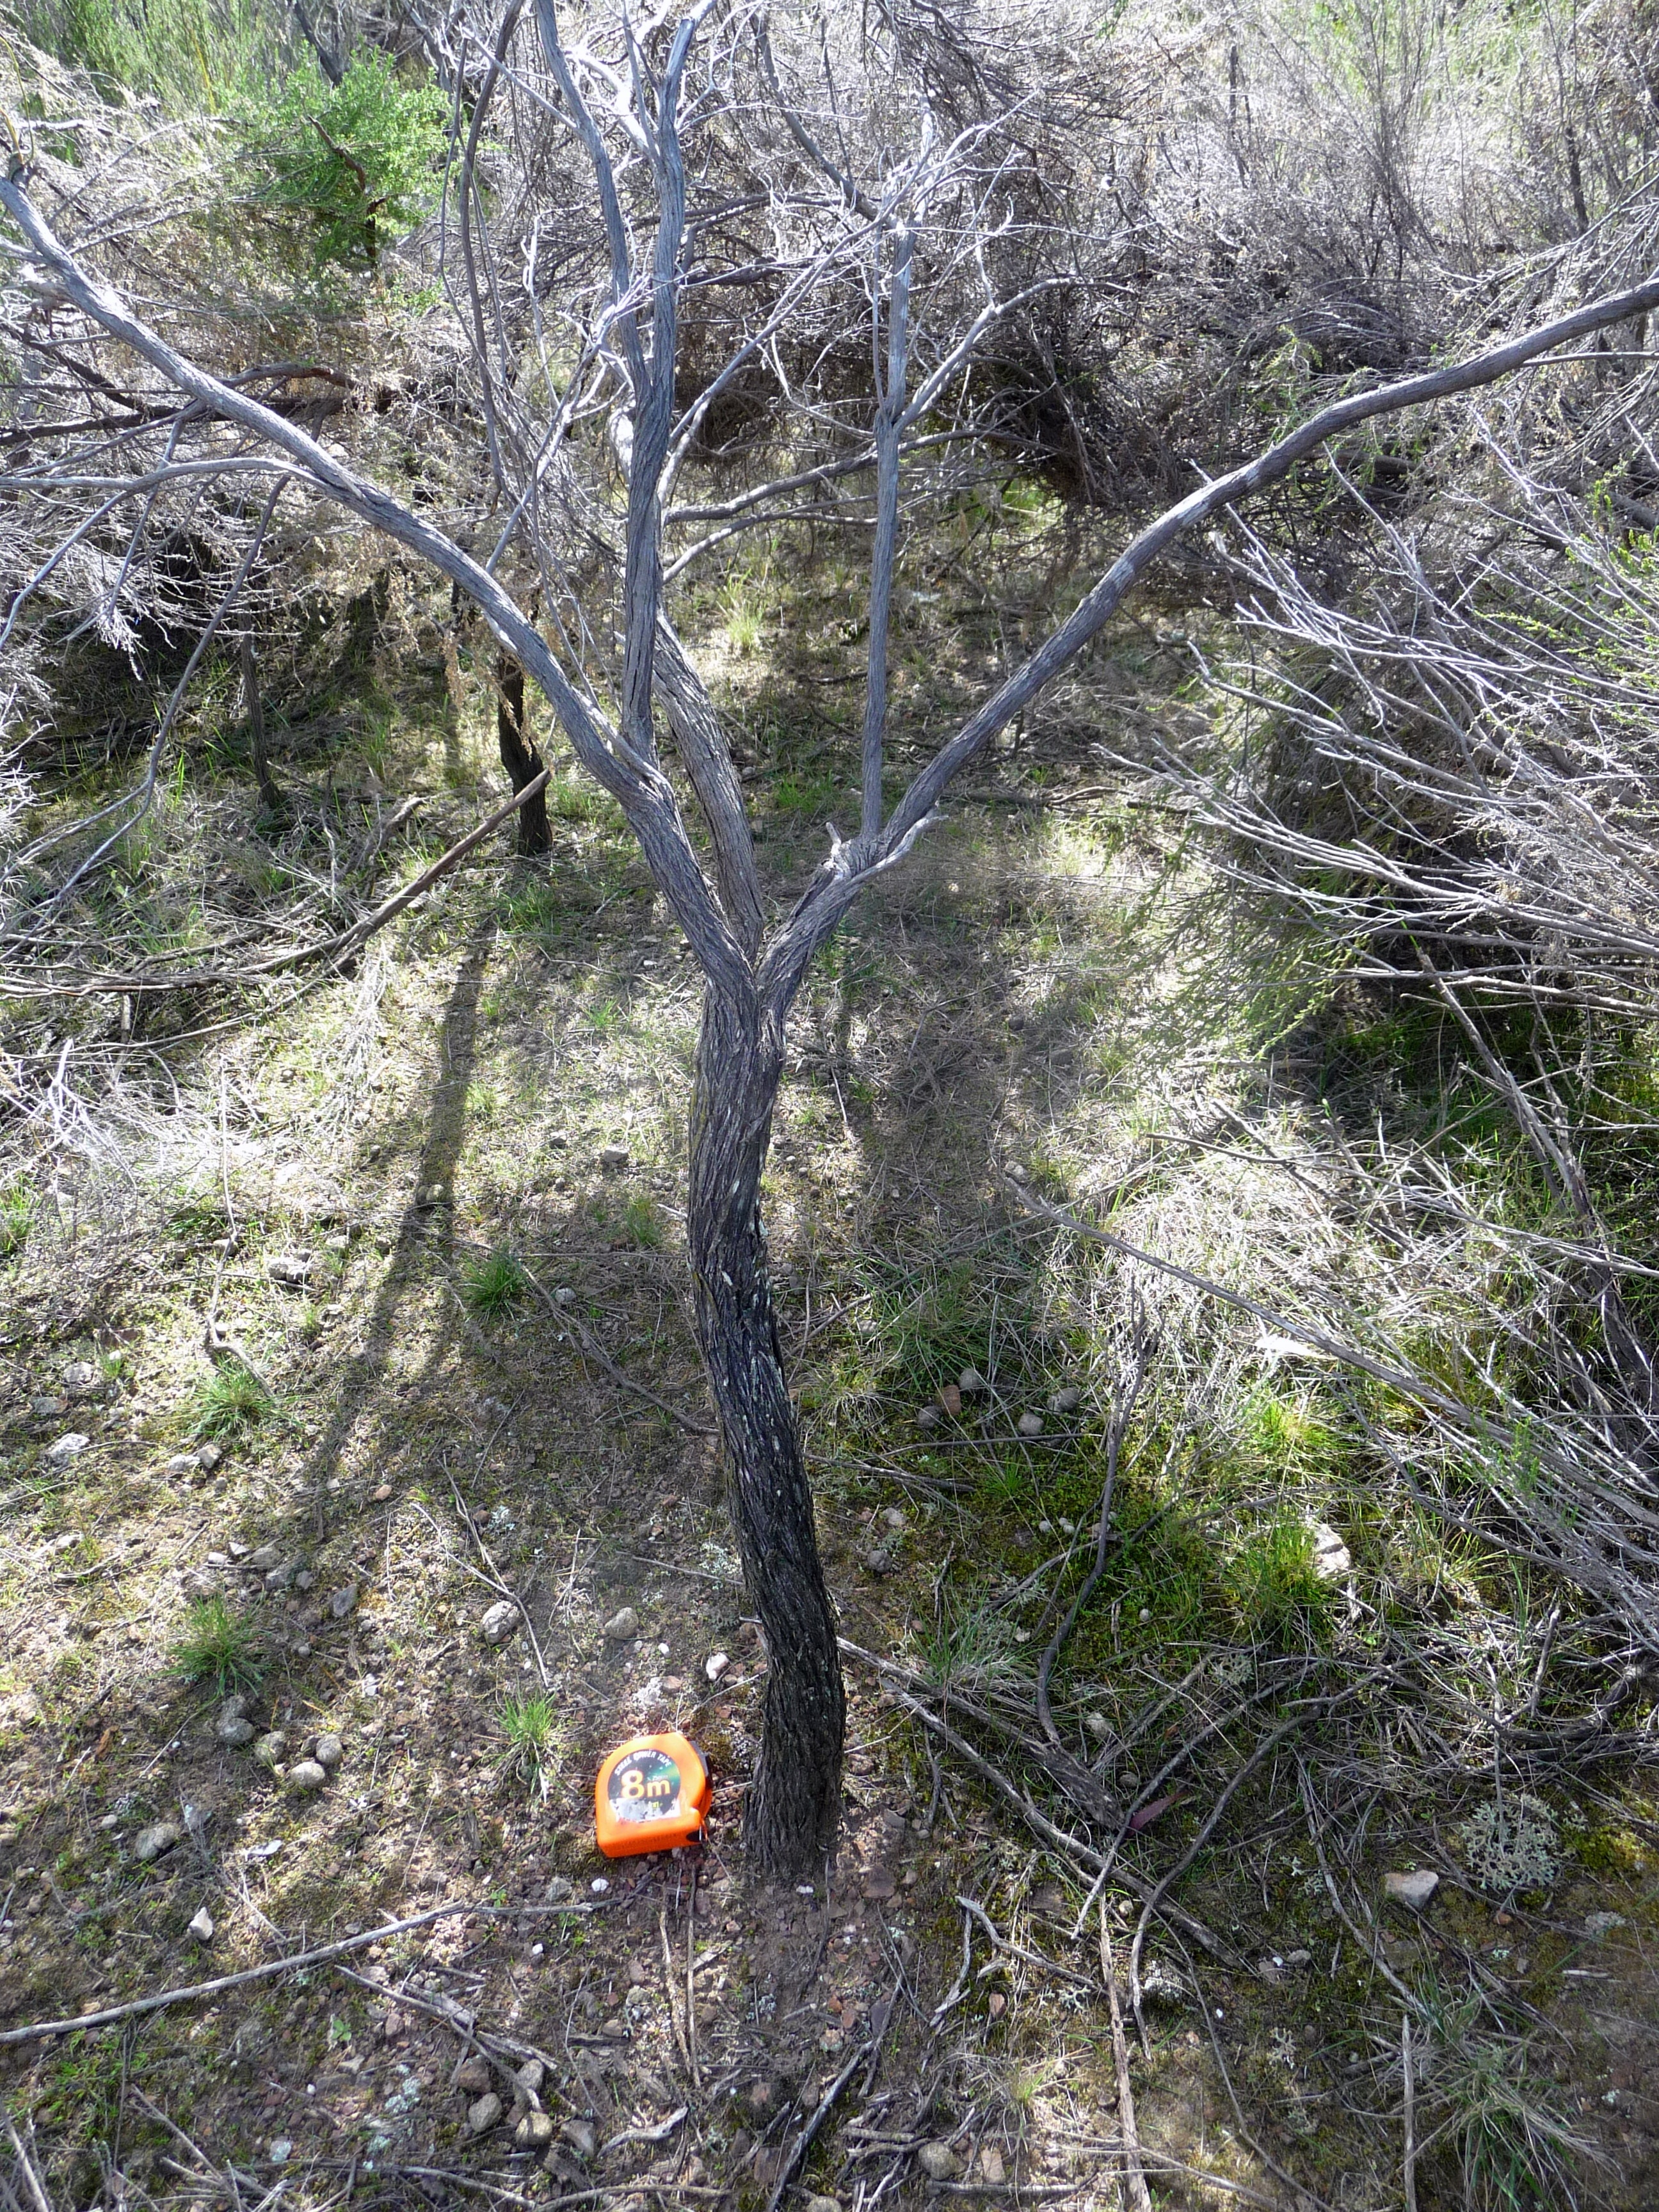 Growing old in a shrubland: gravity always wins